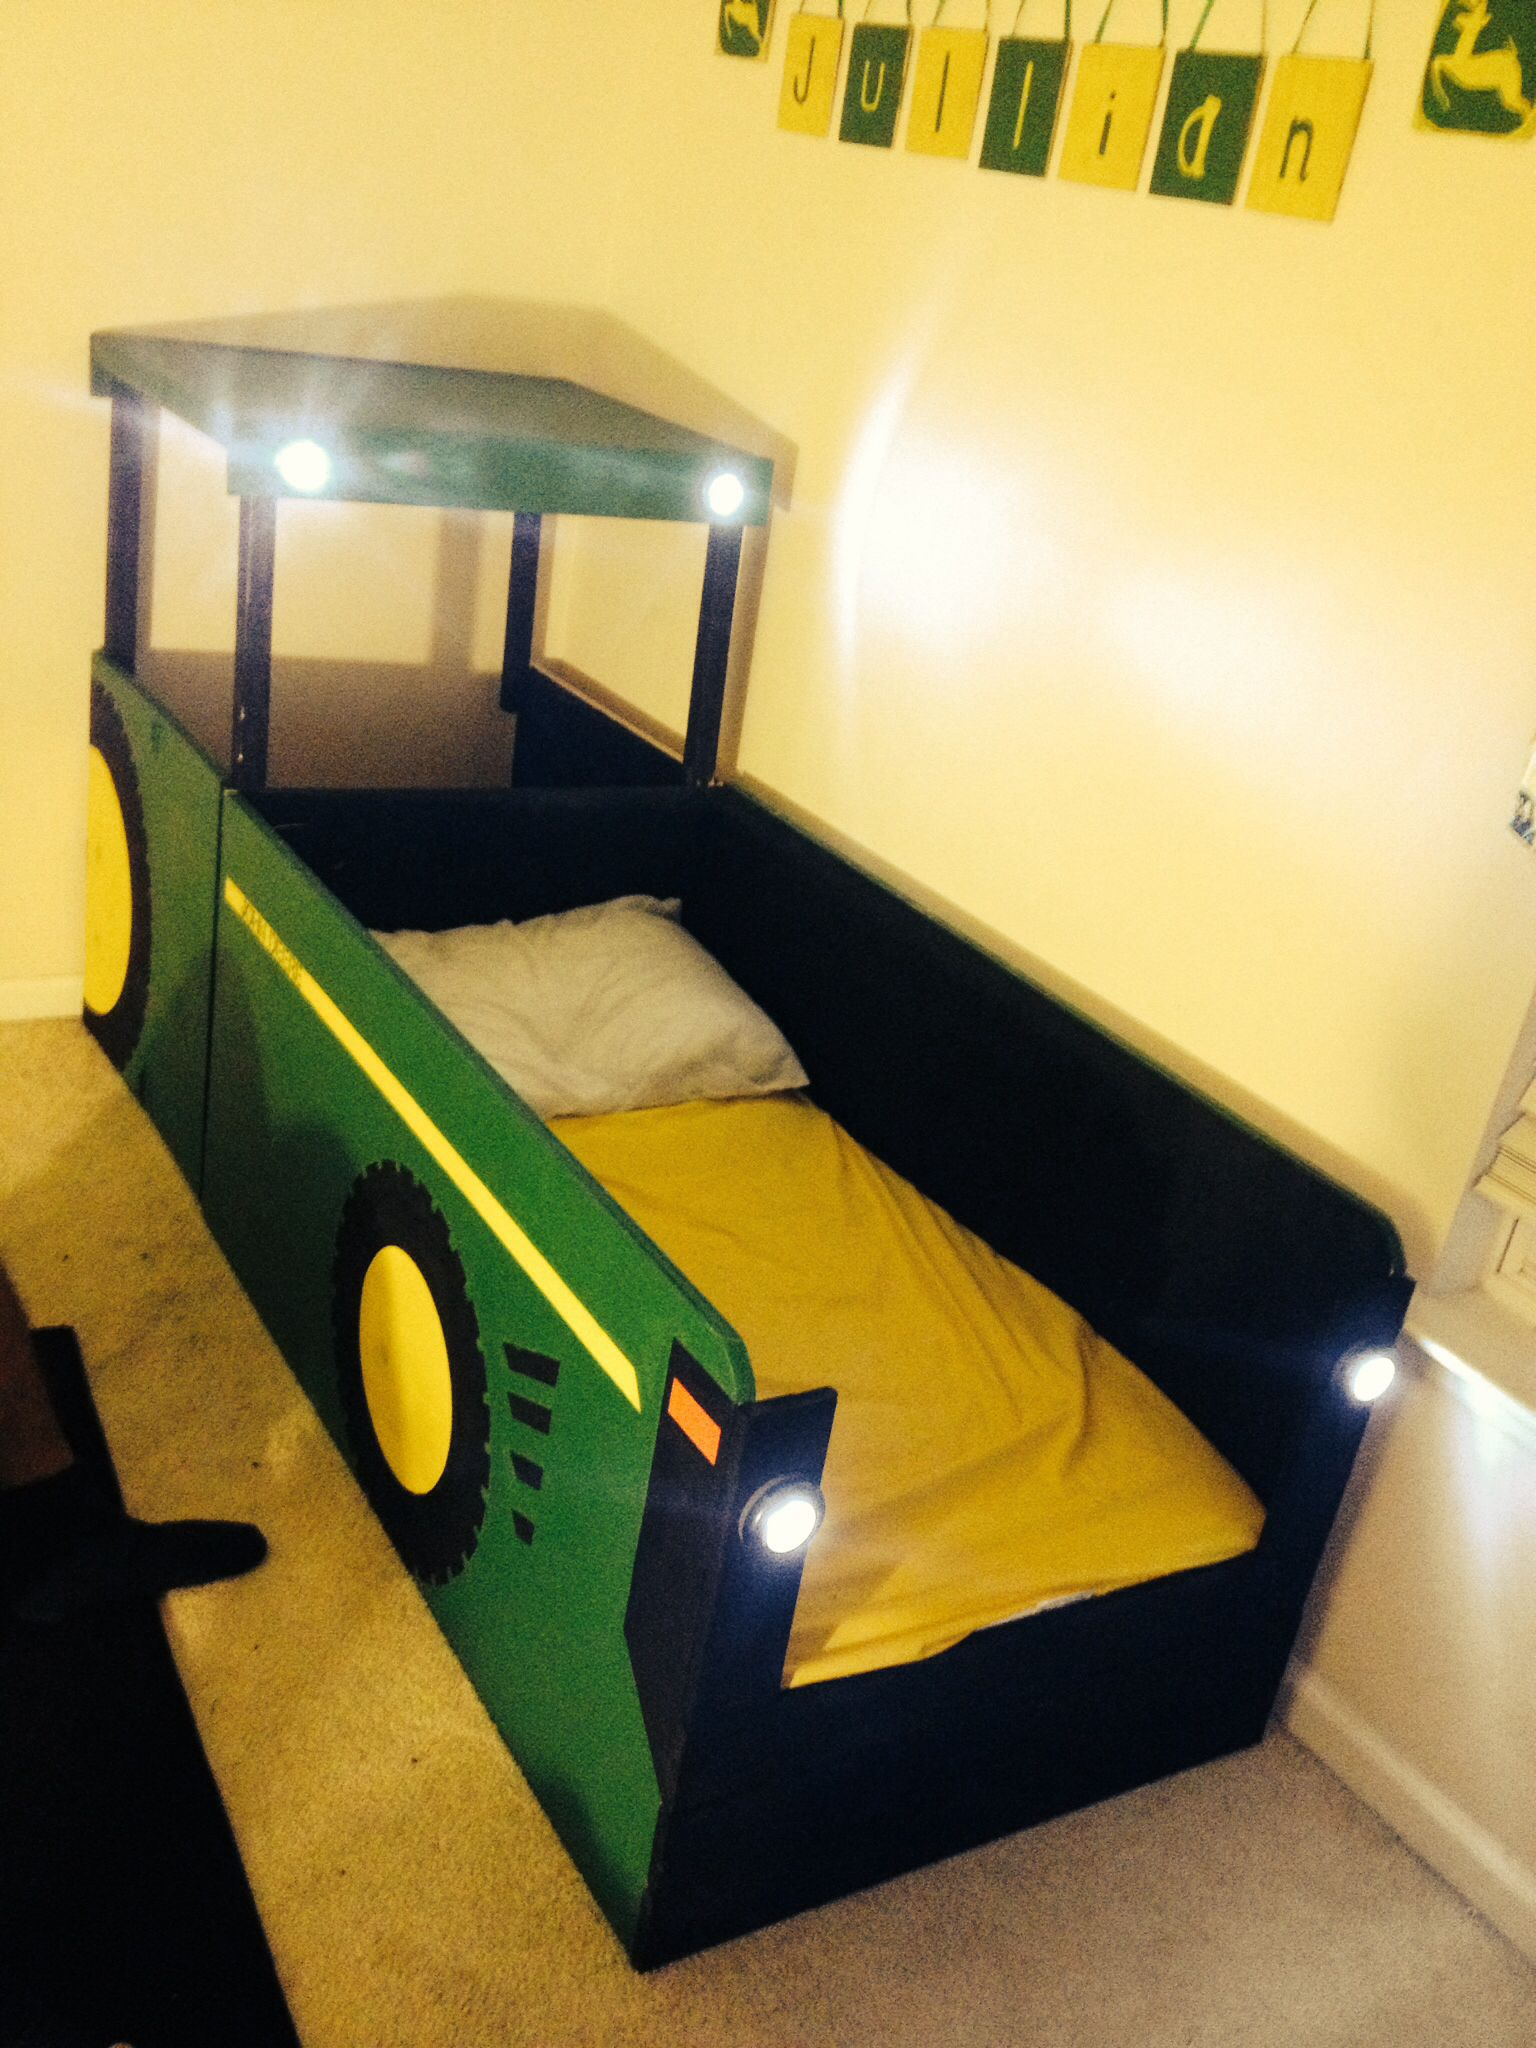 John Deere Tractor Bed I Built For My 18 Month Old He